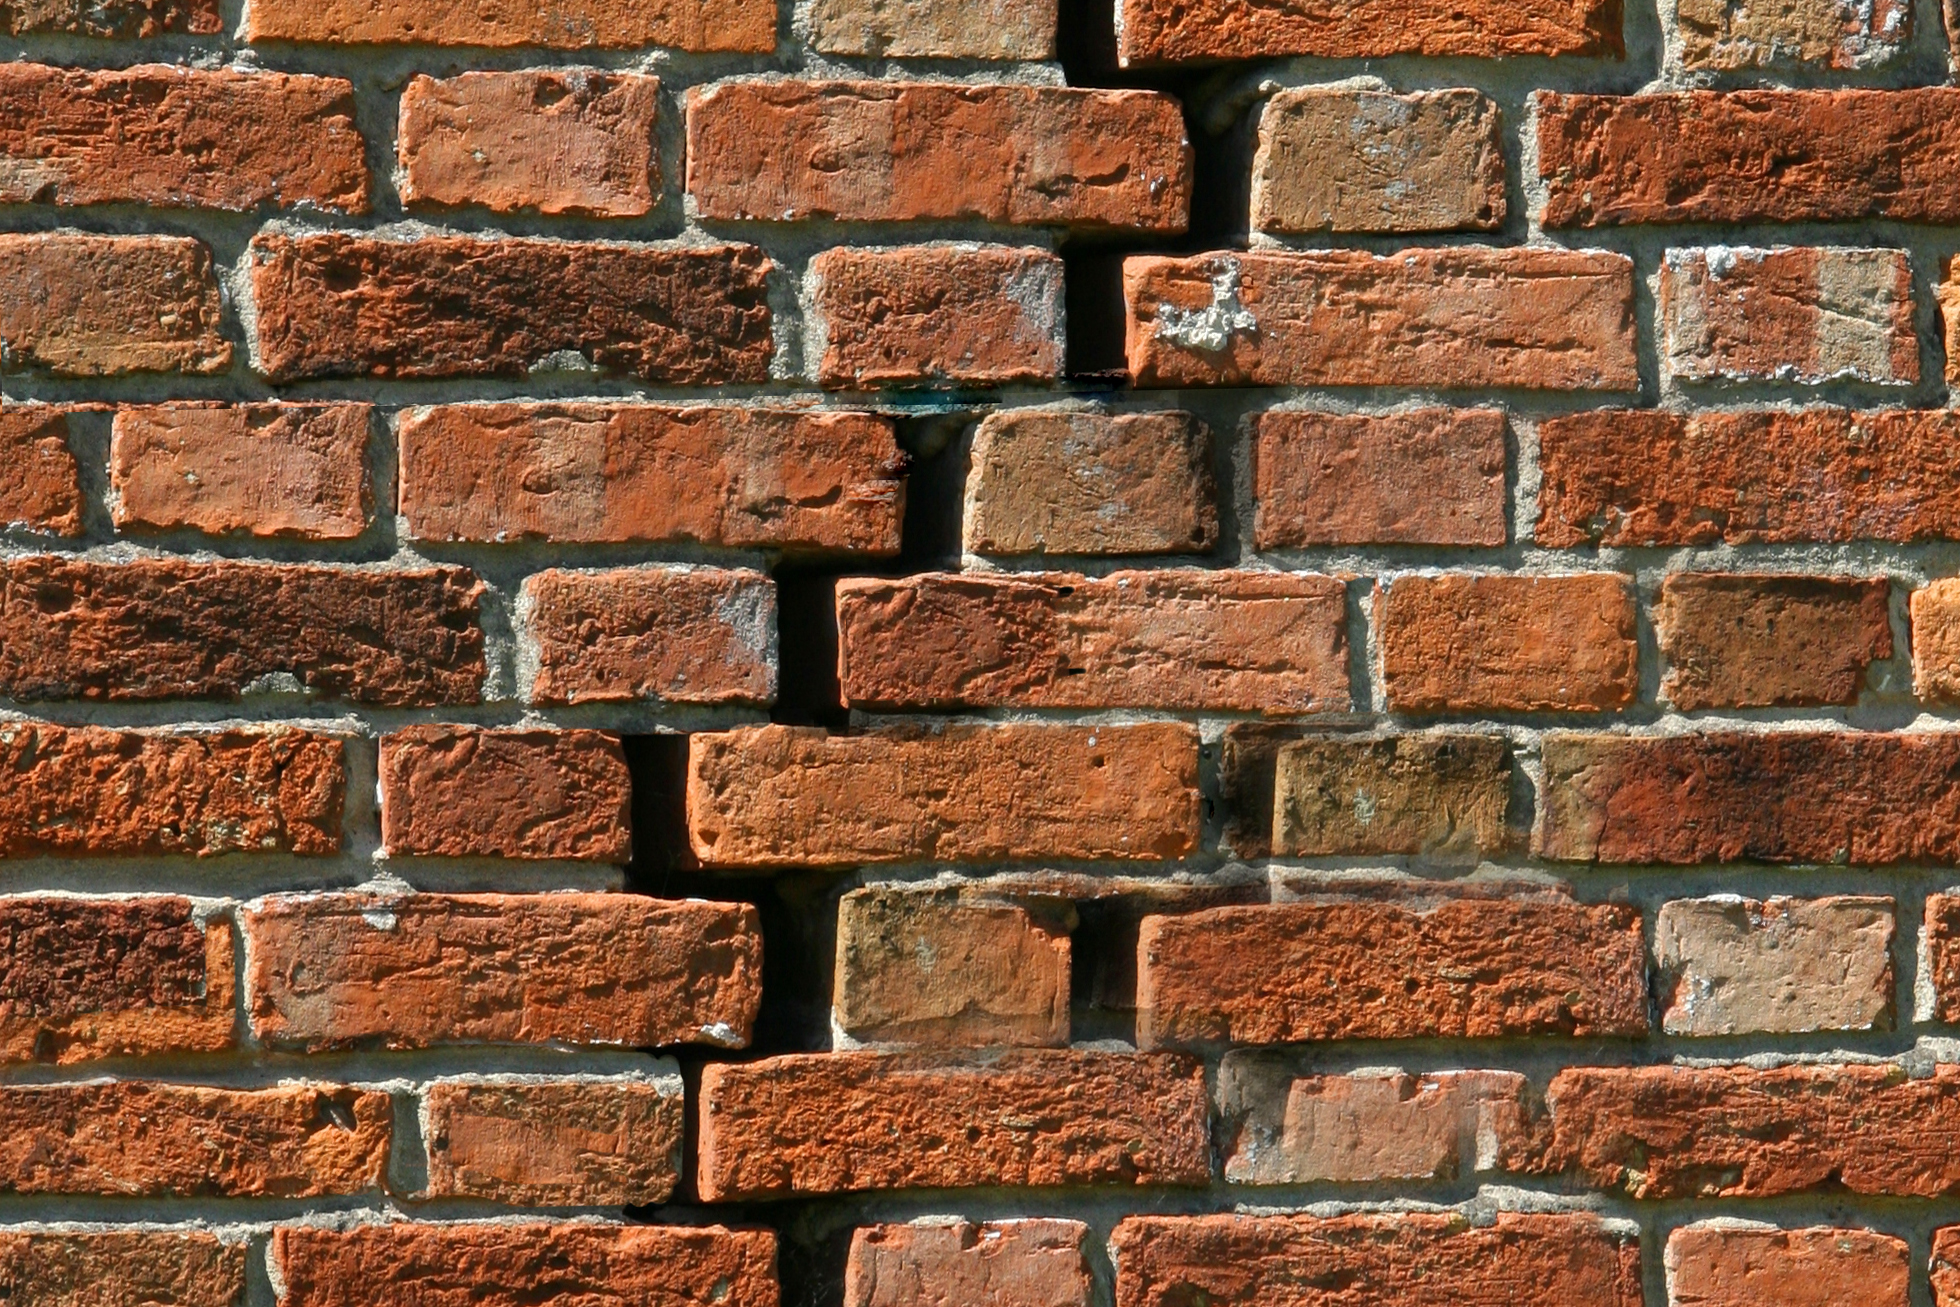 Brick exterior wall with damage